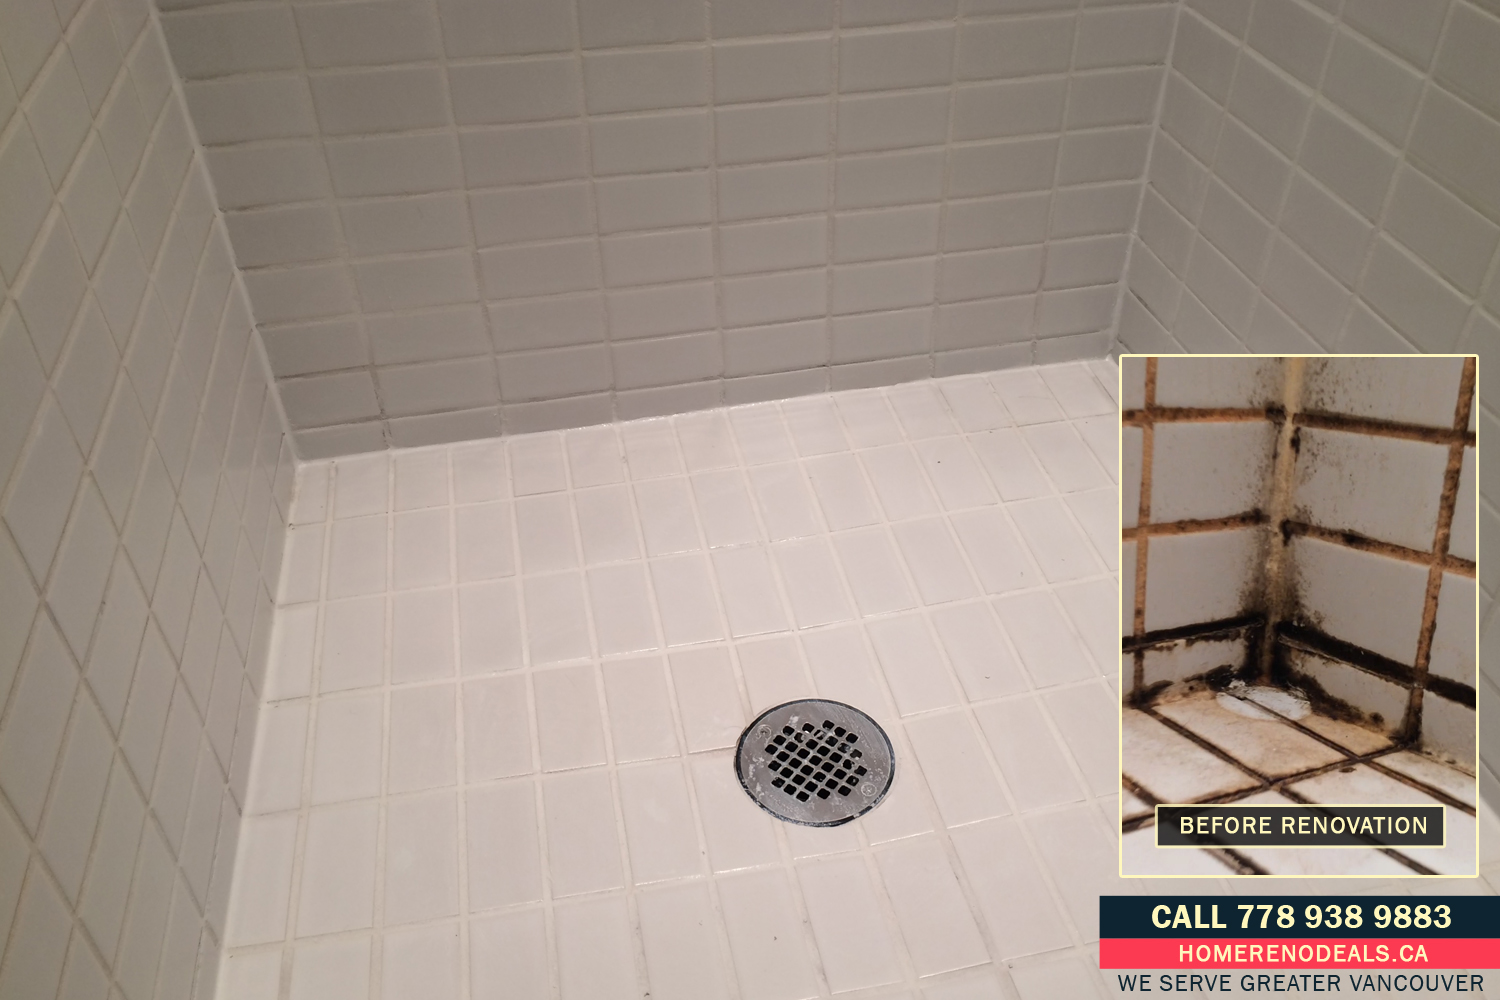 Regrouting Service Near Me. Home Renovation Deals in Greater Vancouver, BC